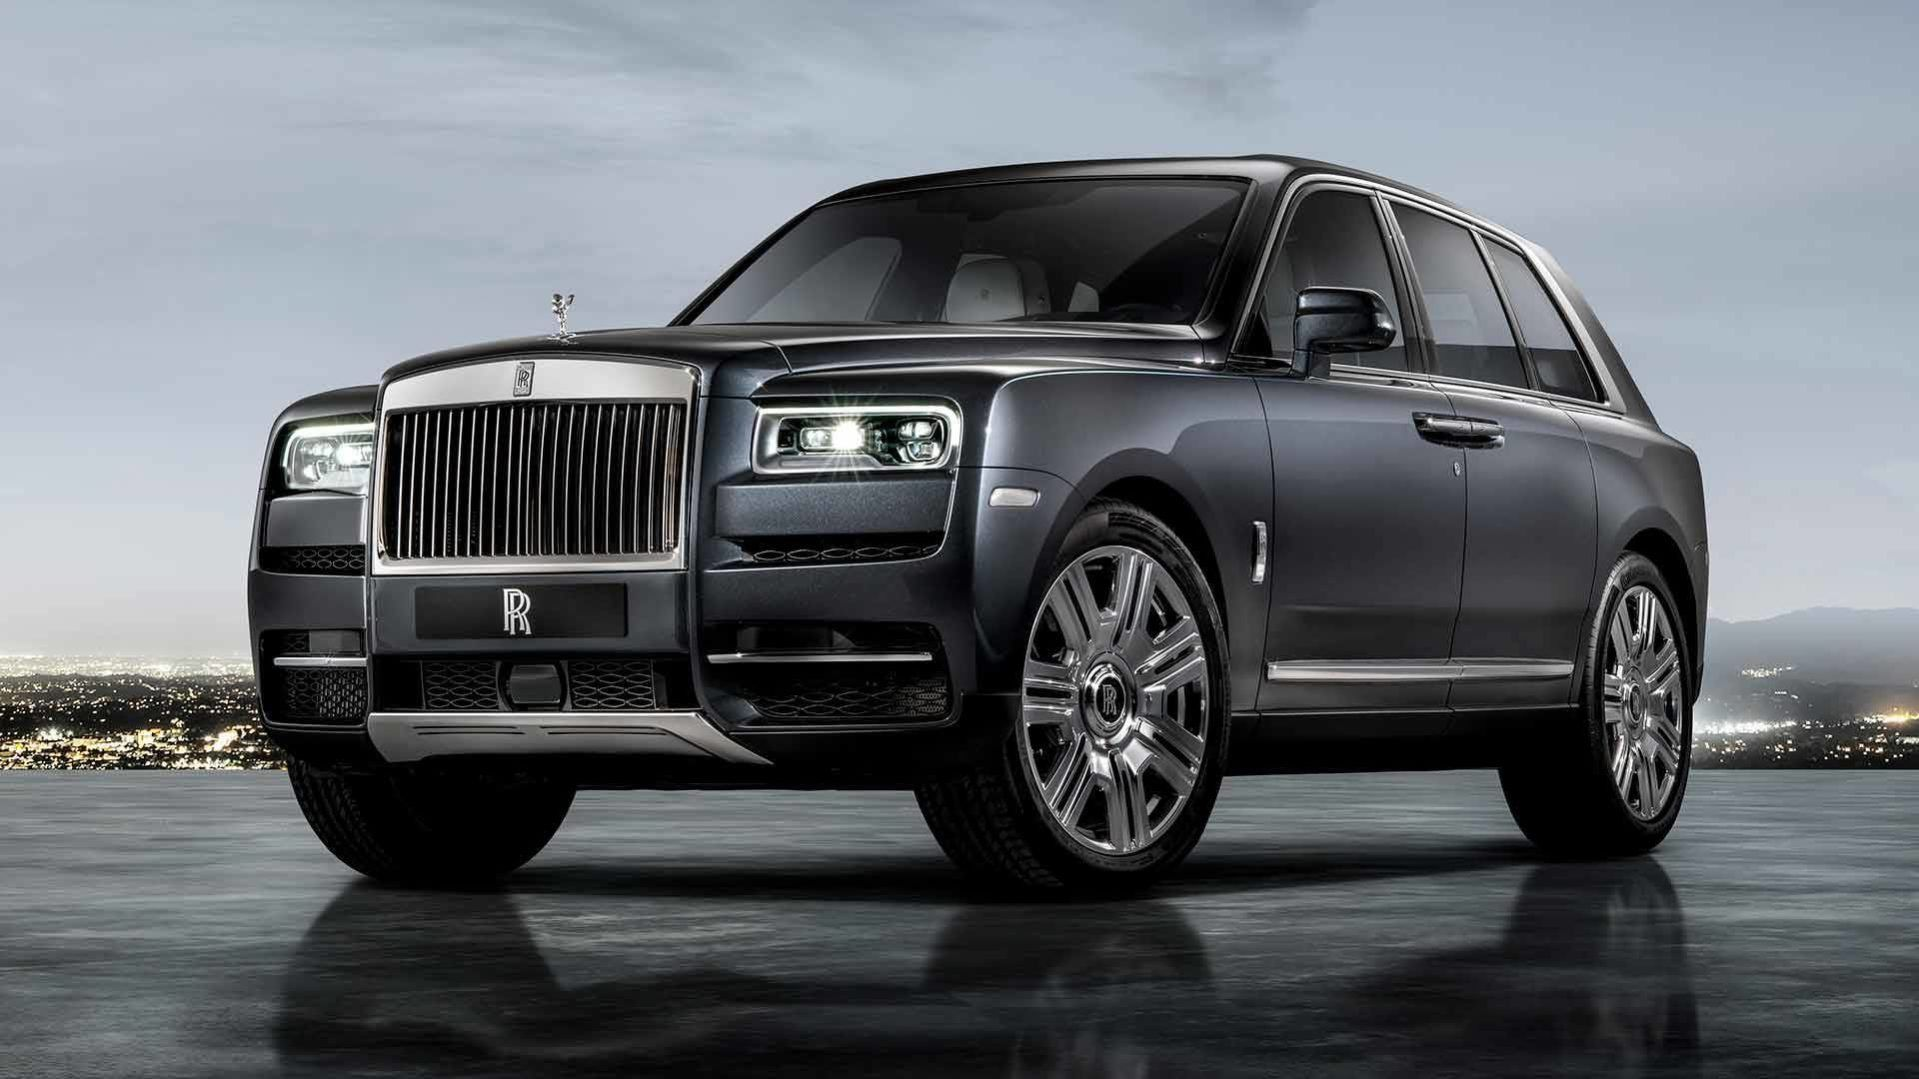 2021 Rolls Royce Wraith Price And Release Date In 2020 Rolls Royce Rolls Royce Wraith Rolls Royce Black